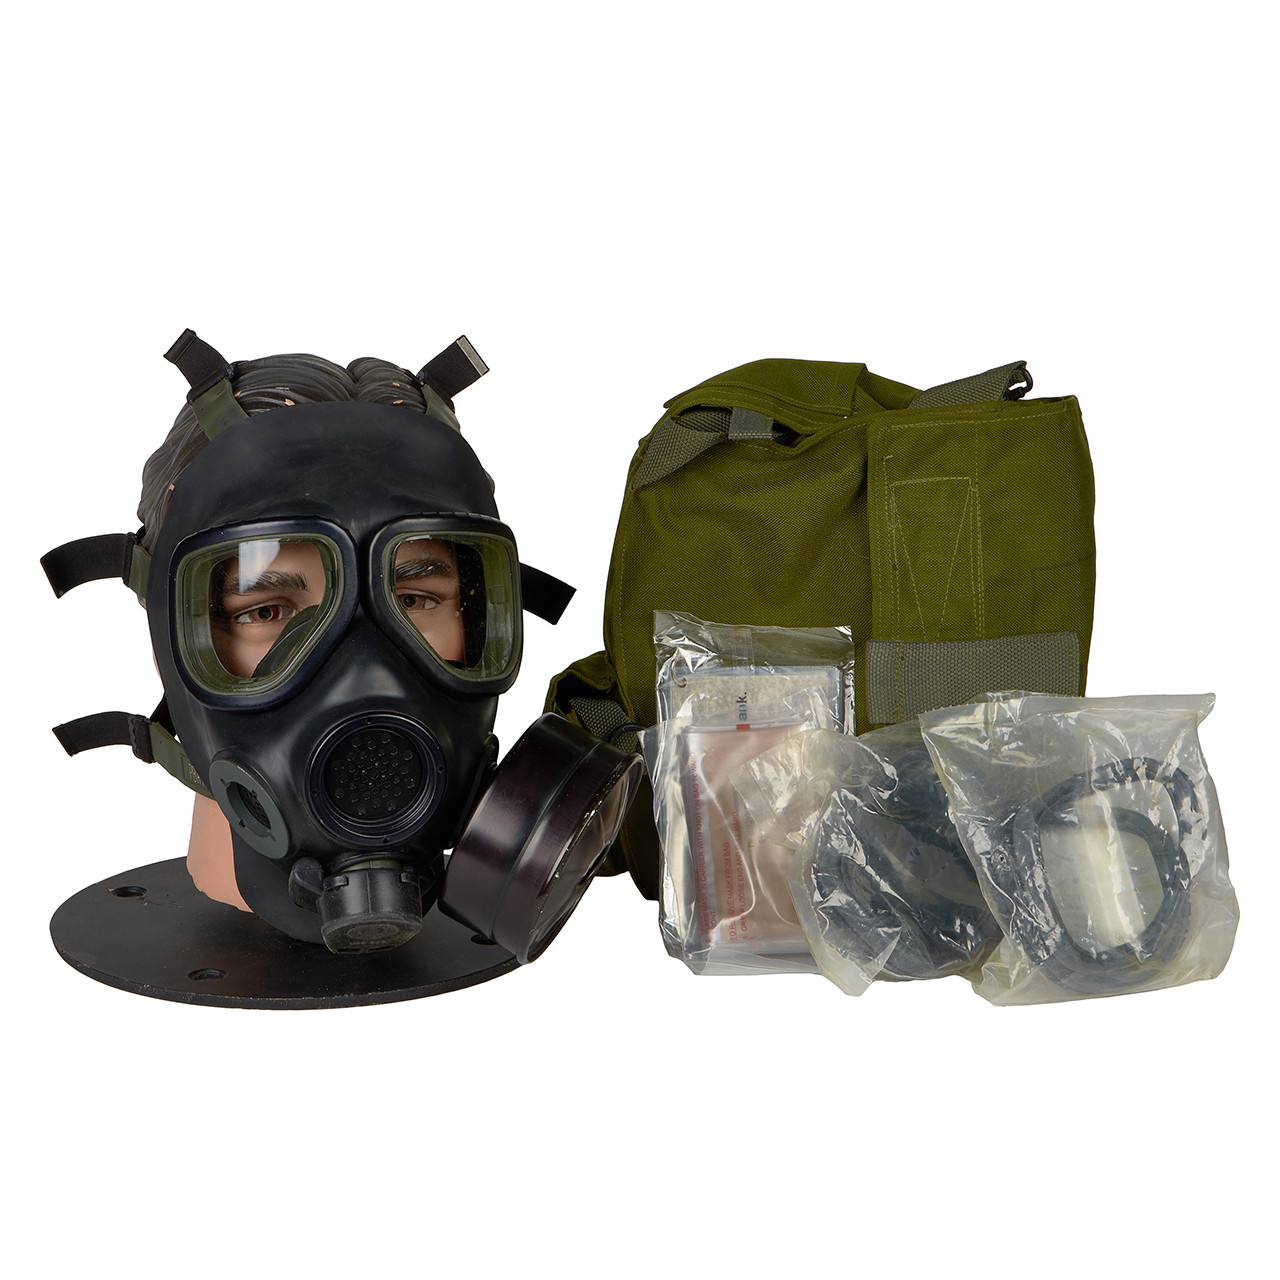 GM70 M40 SERIES G.I. ISSUE GAS MASK